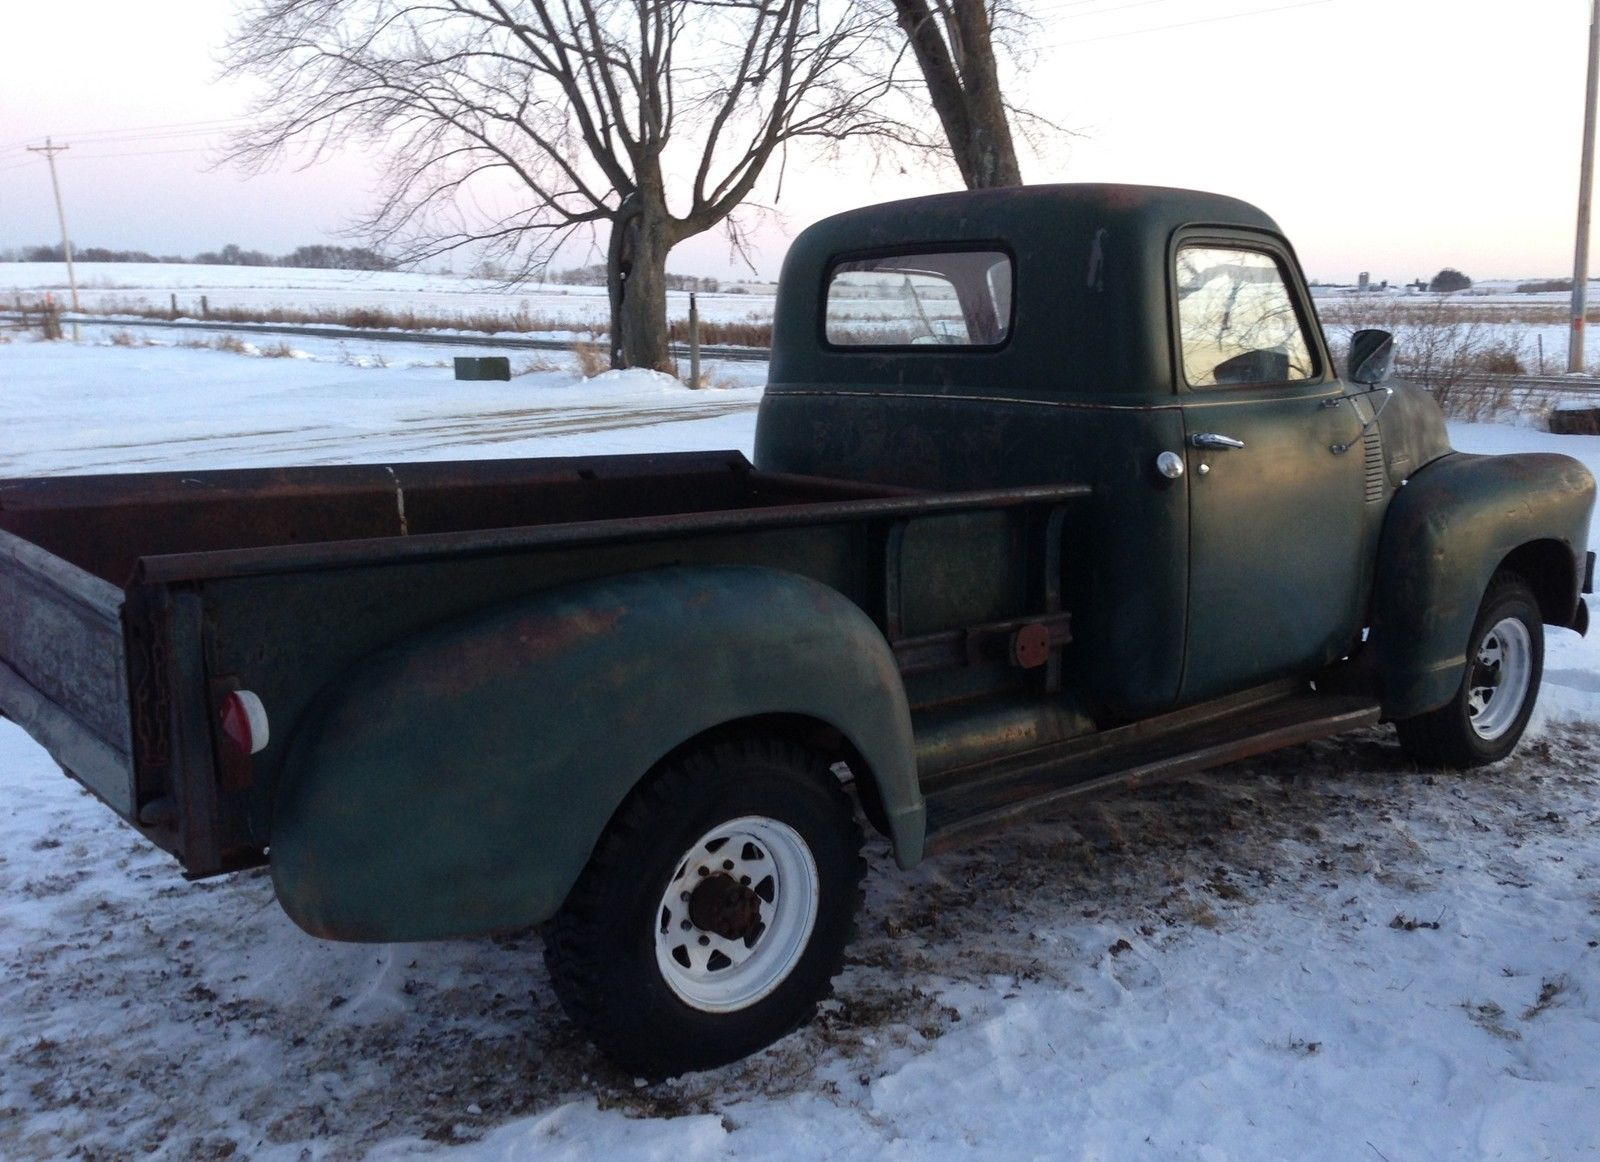 BARN FIND 1950 CHEVROLET 3600 PICKUP TRUCK PATINA HOT RAT ROD GMC 1947 1953 for sale in Roberts